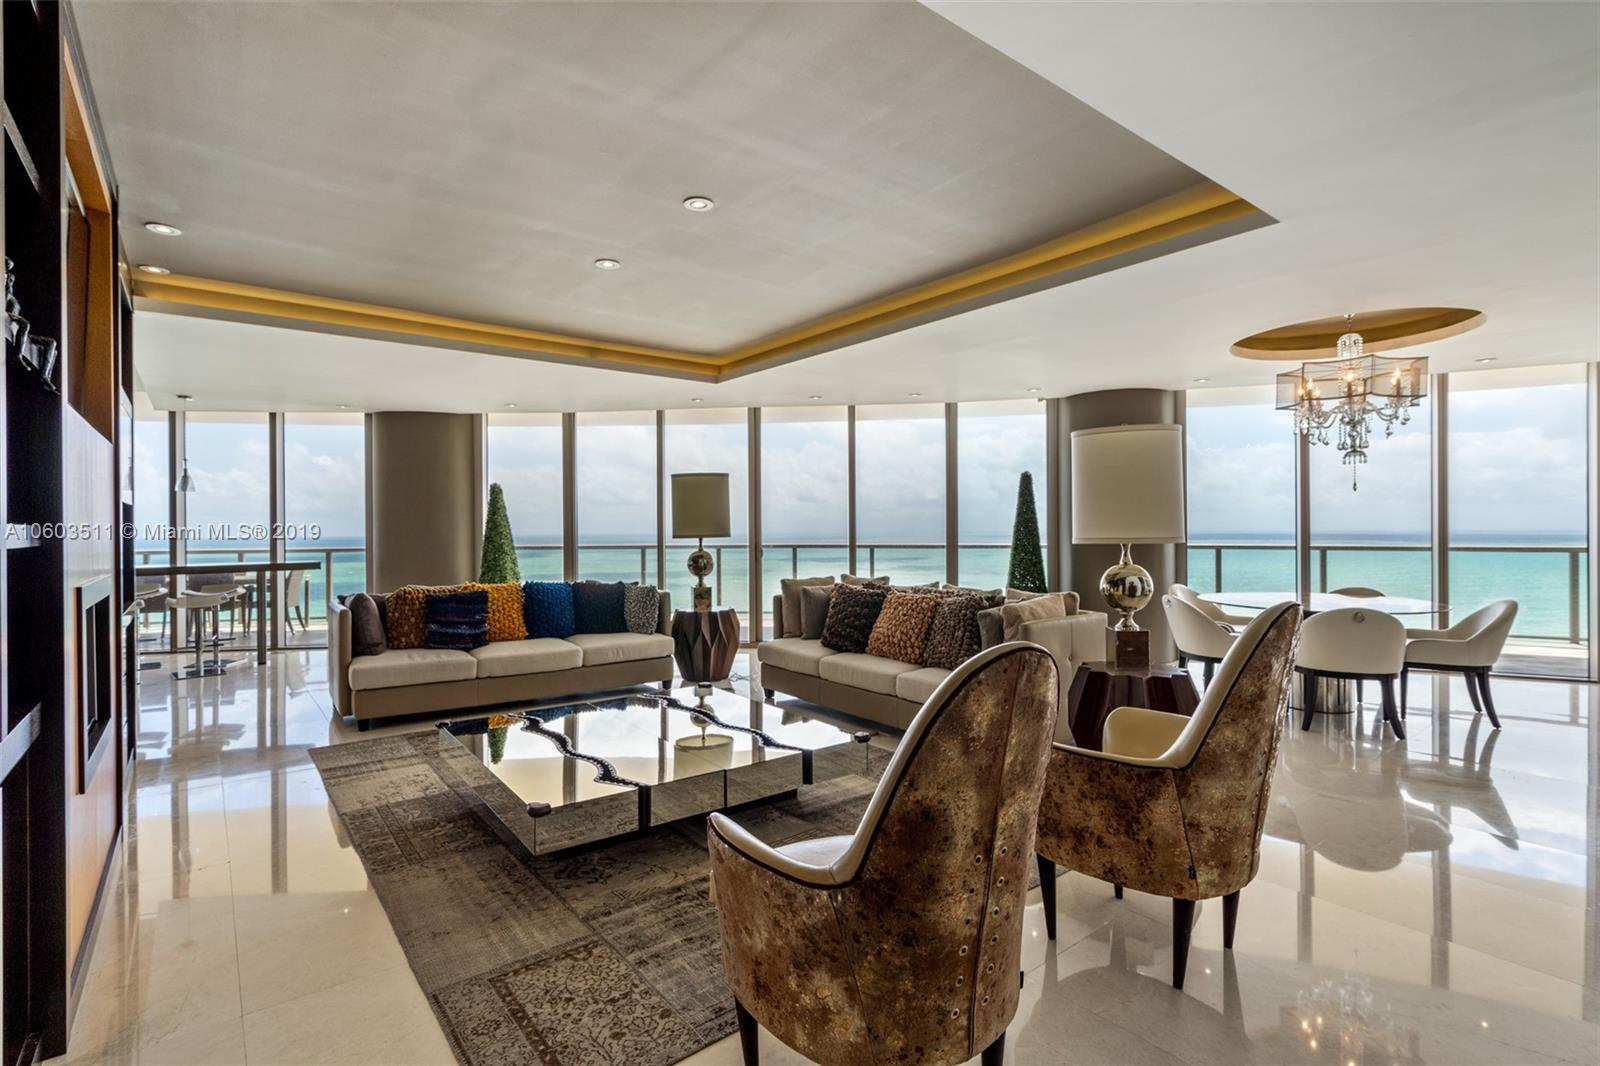 Exquisitely finished and furnished residence at the St. Regis Bal Harbour Center (Hotel Tower). 3 bedrooms, 3.5 baths. Breathtaking ocean view, enjoy 5 star resort amenities including 14000 SF Remede Spa.